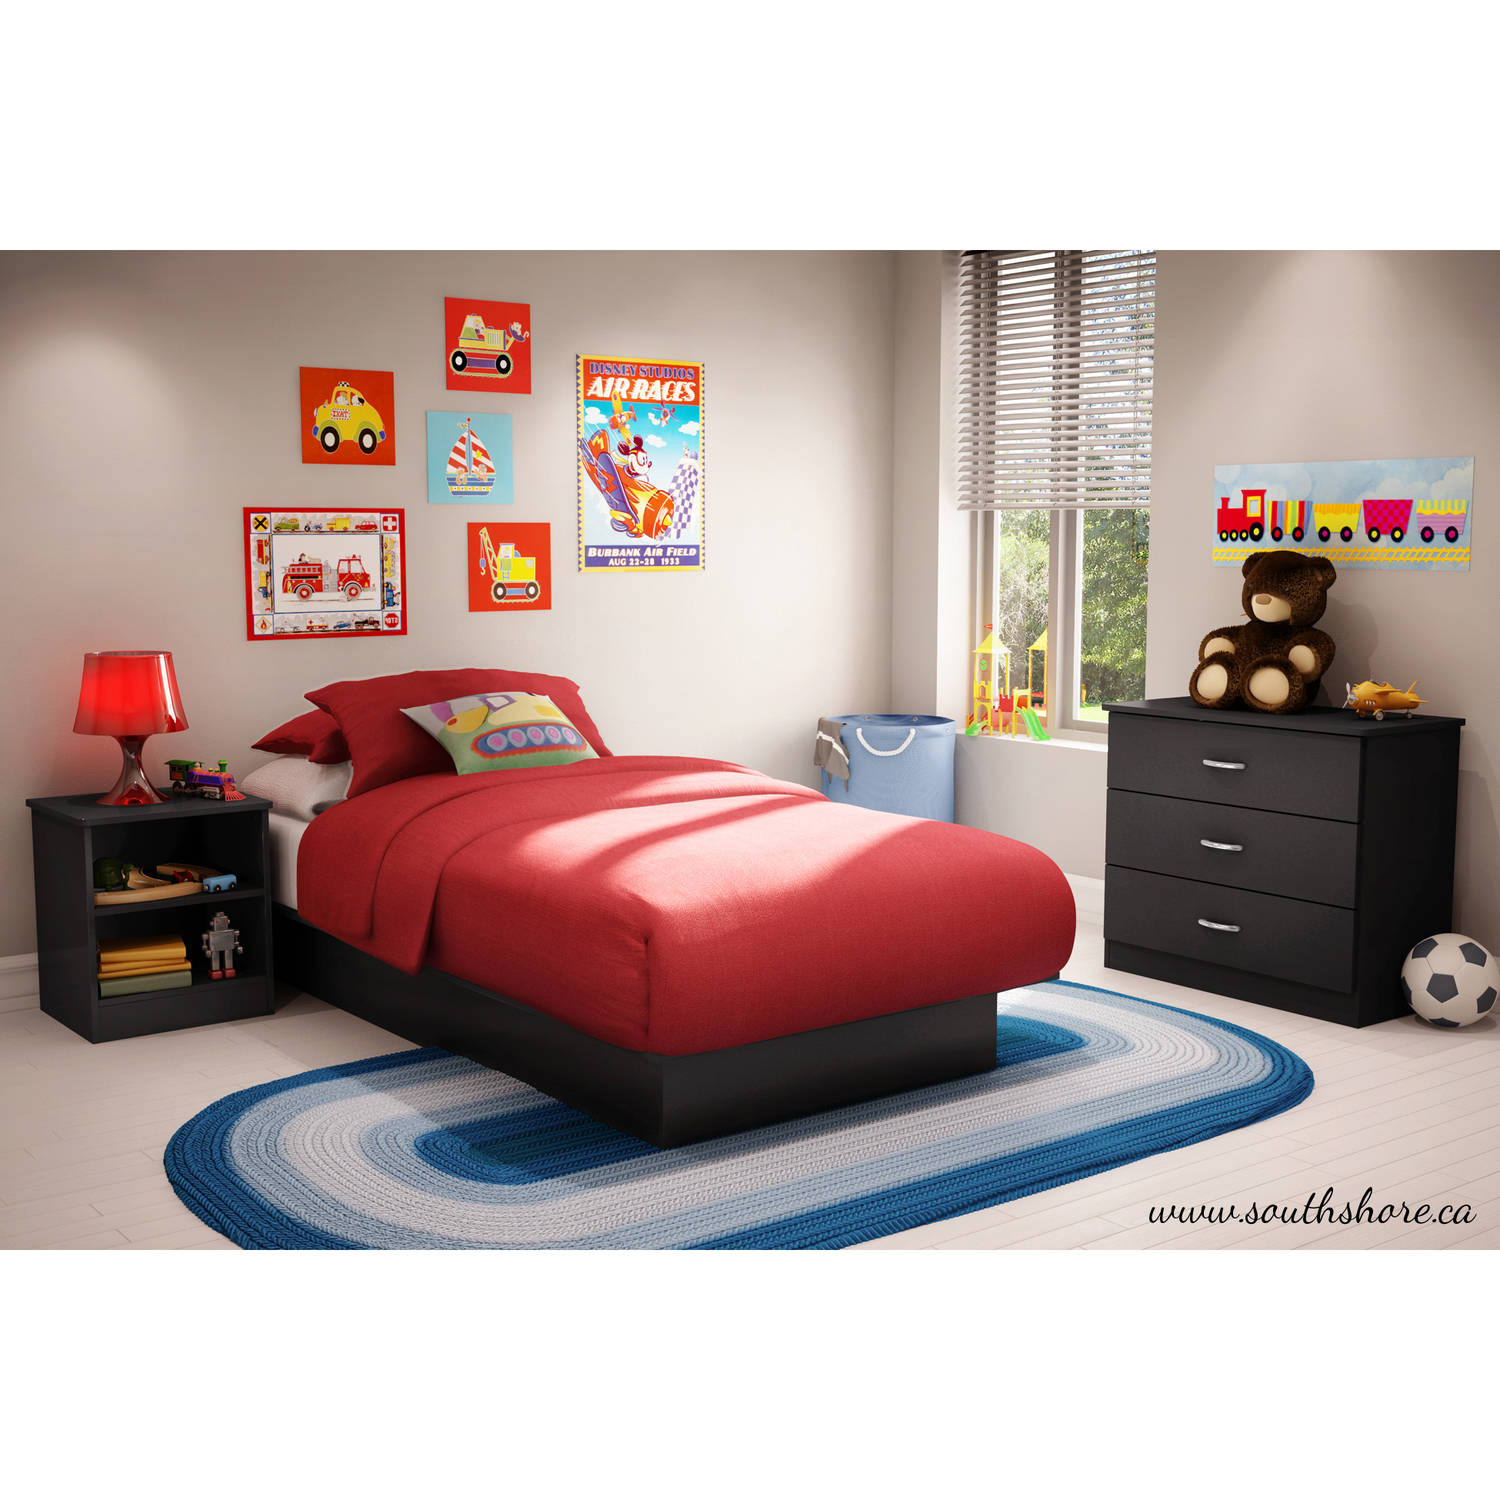 Bedroom Sets Kids kids' bedroom sets - walmart